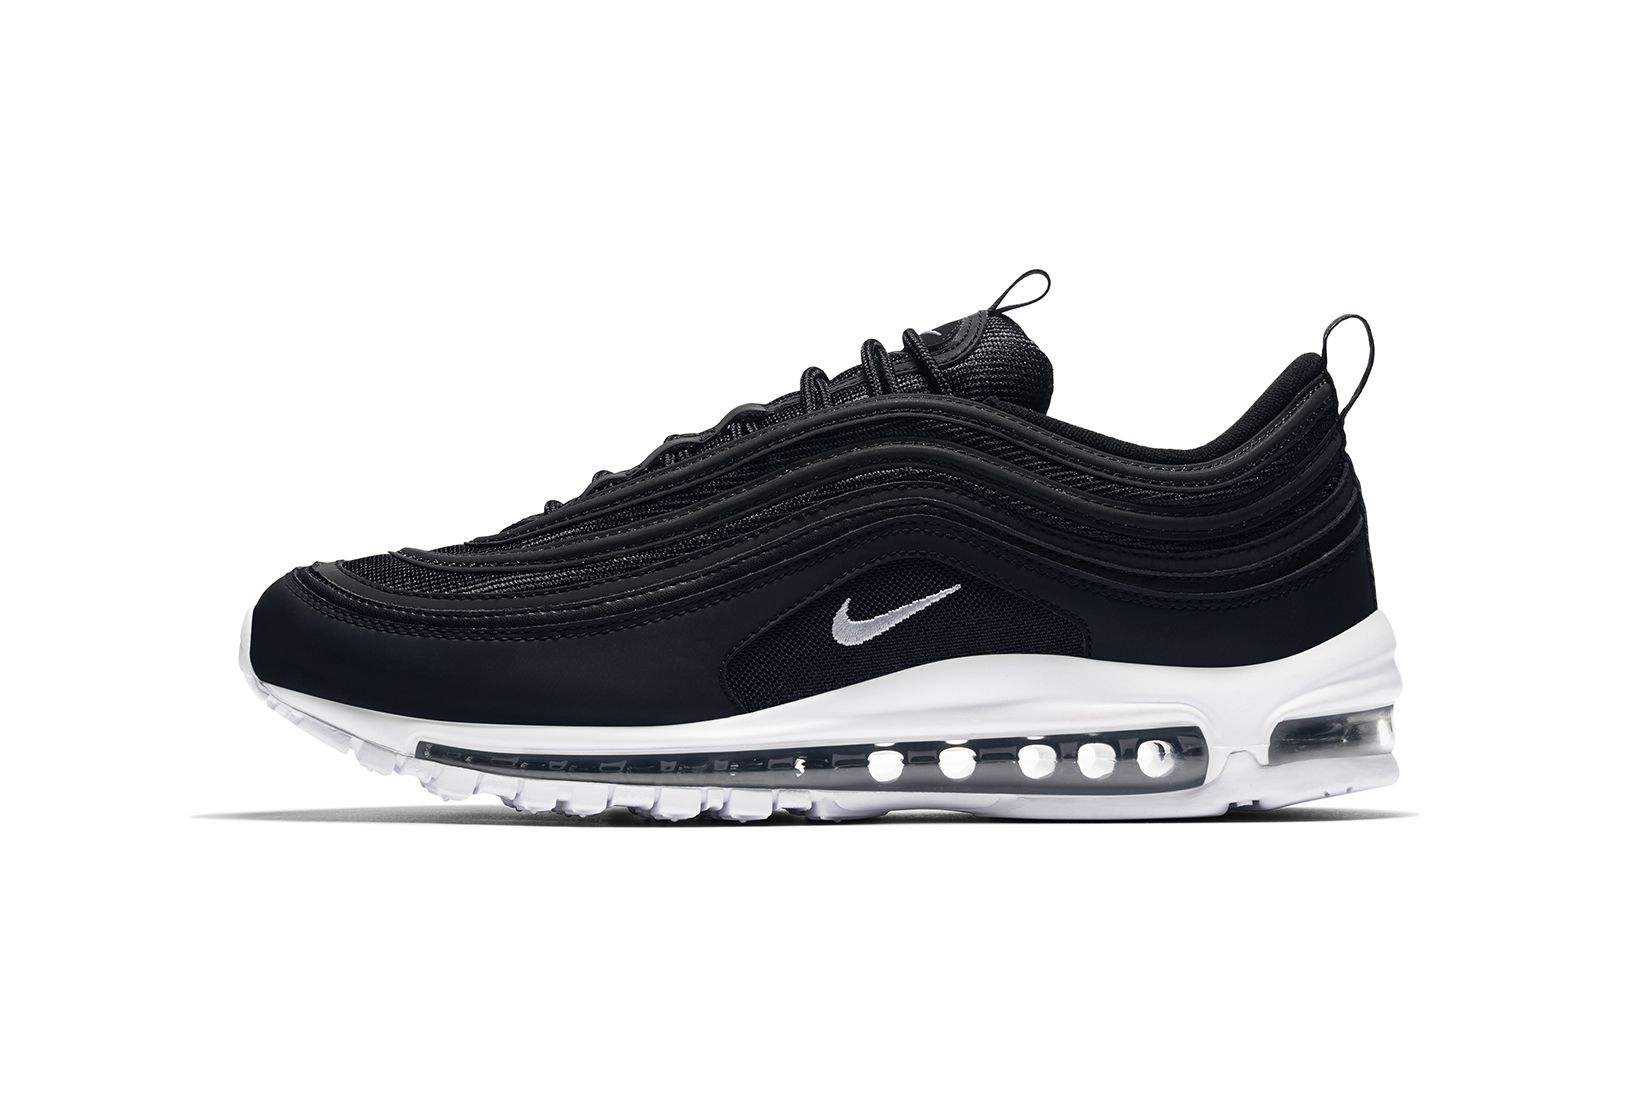 big sale d5b55 45377 Nike Reveals Two Clean Takes on the Air Max 97 OG